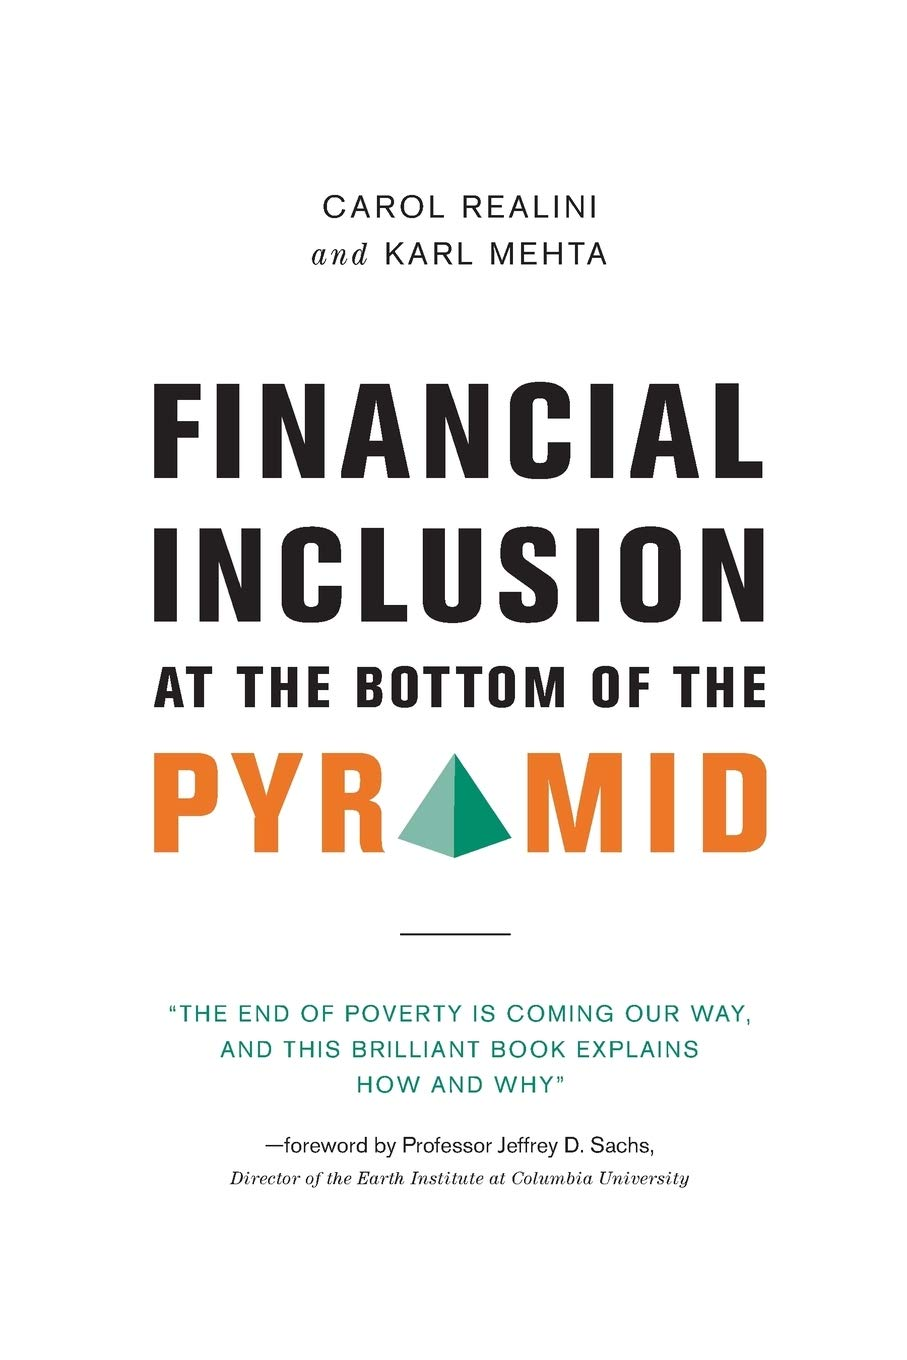 Image OfFinancial Inclusion At The Bottom Of The Pyramid